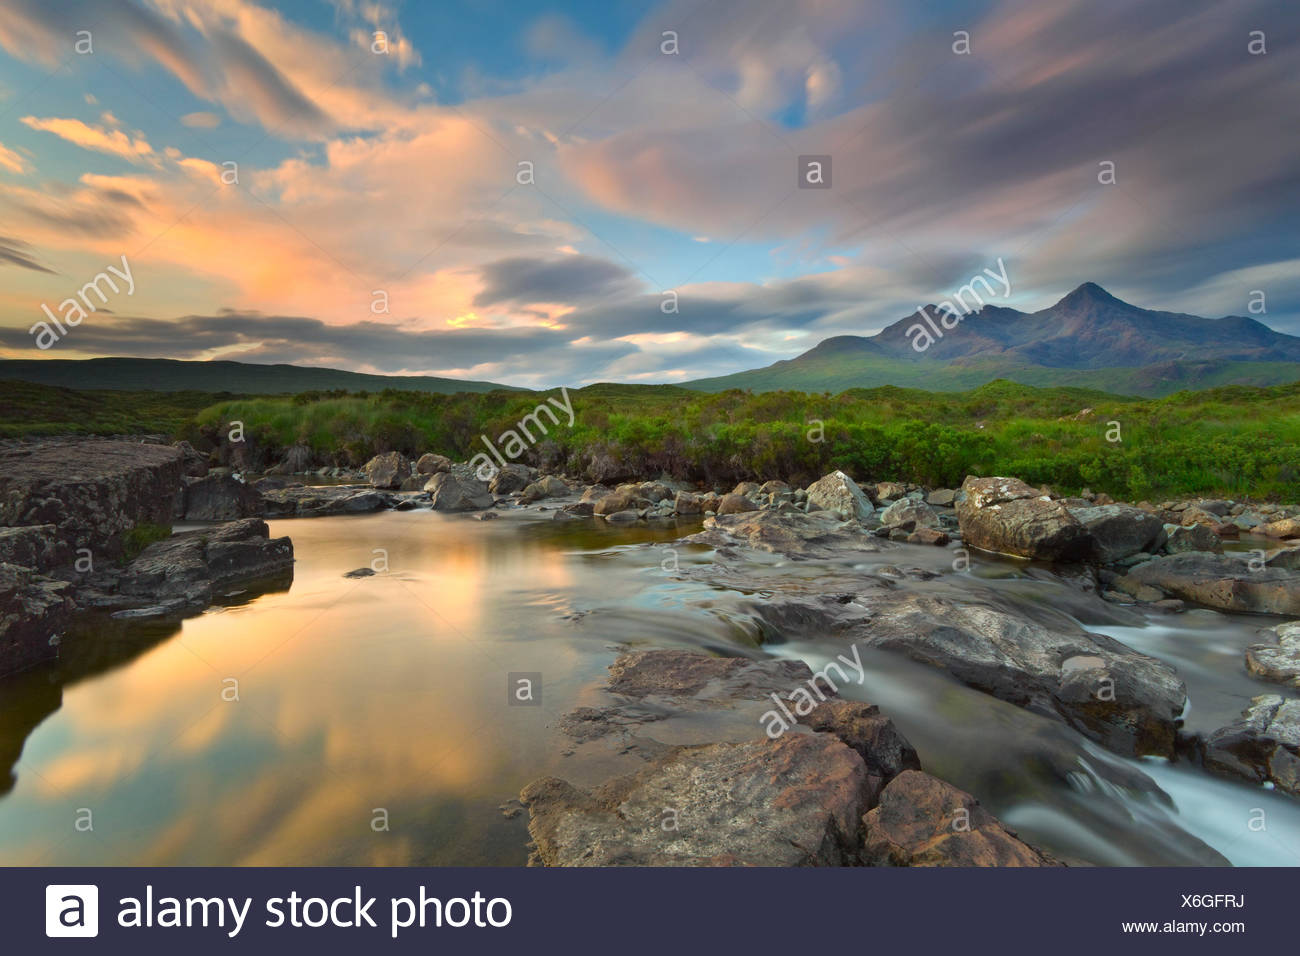 Isle of Skye, Scotland, Europe. The last sunset colors reflected in the water. In the background the peaks of the Black Cuillin. - Stock Image